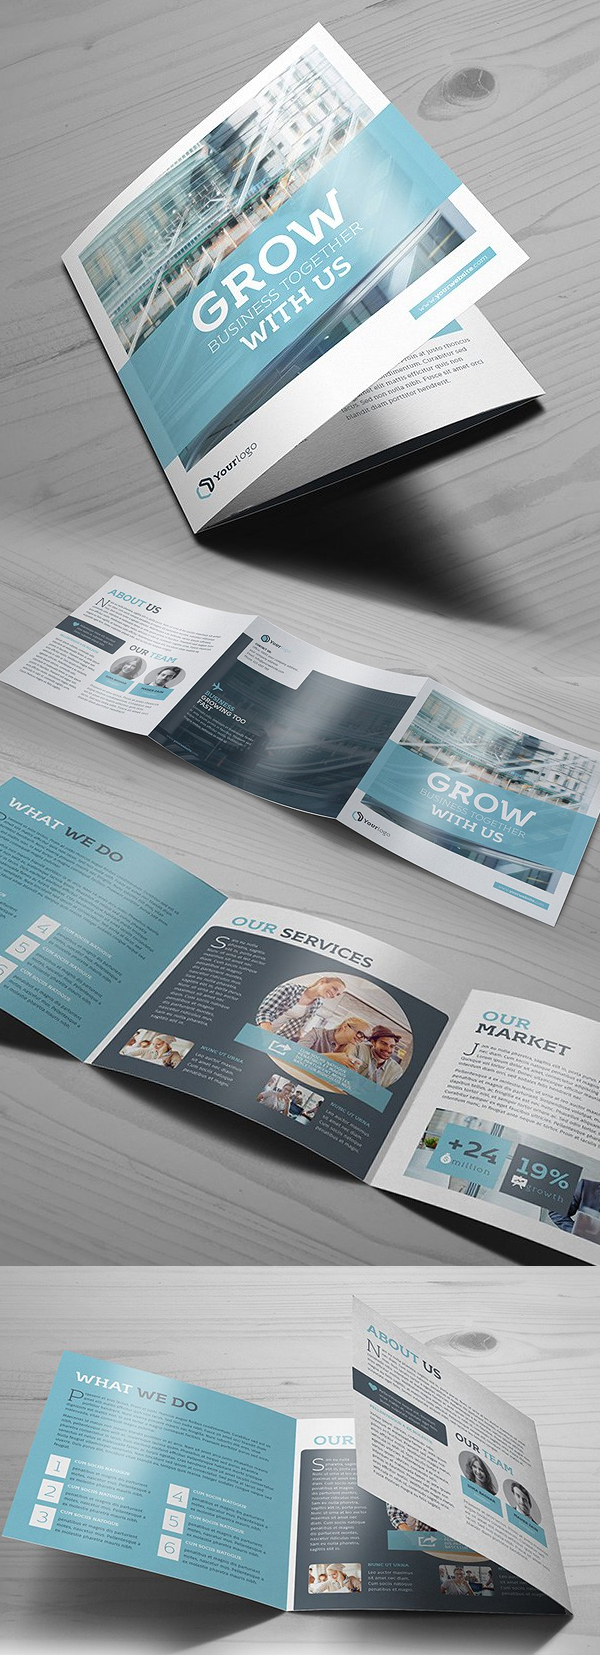 100 Professional Corporate Brochure Templates - 28